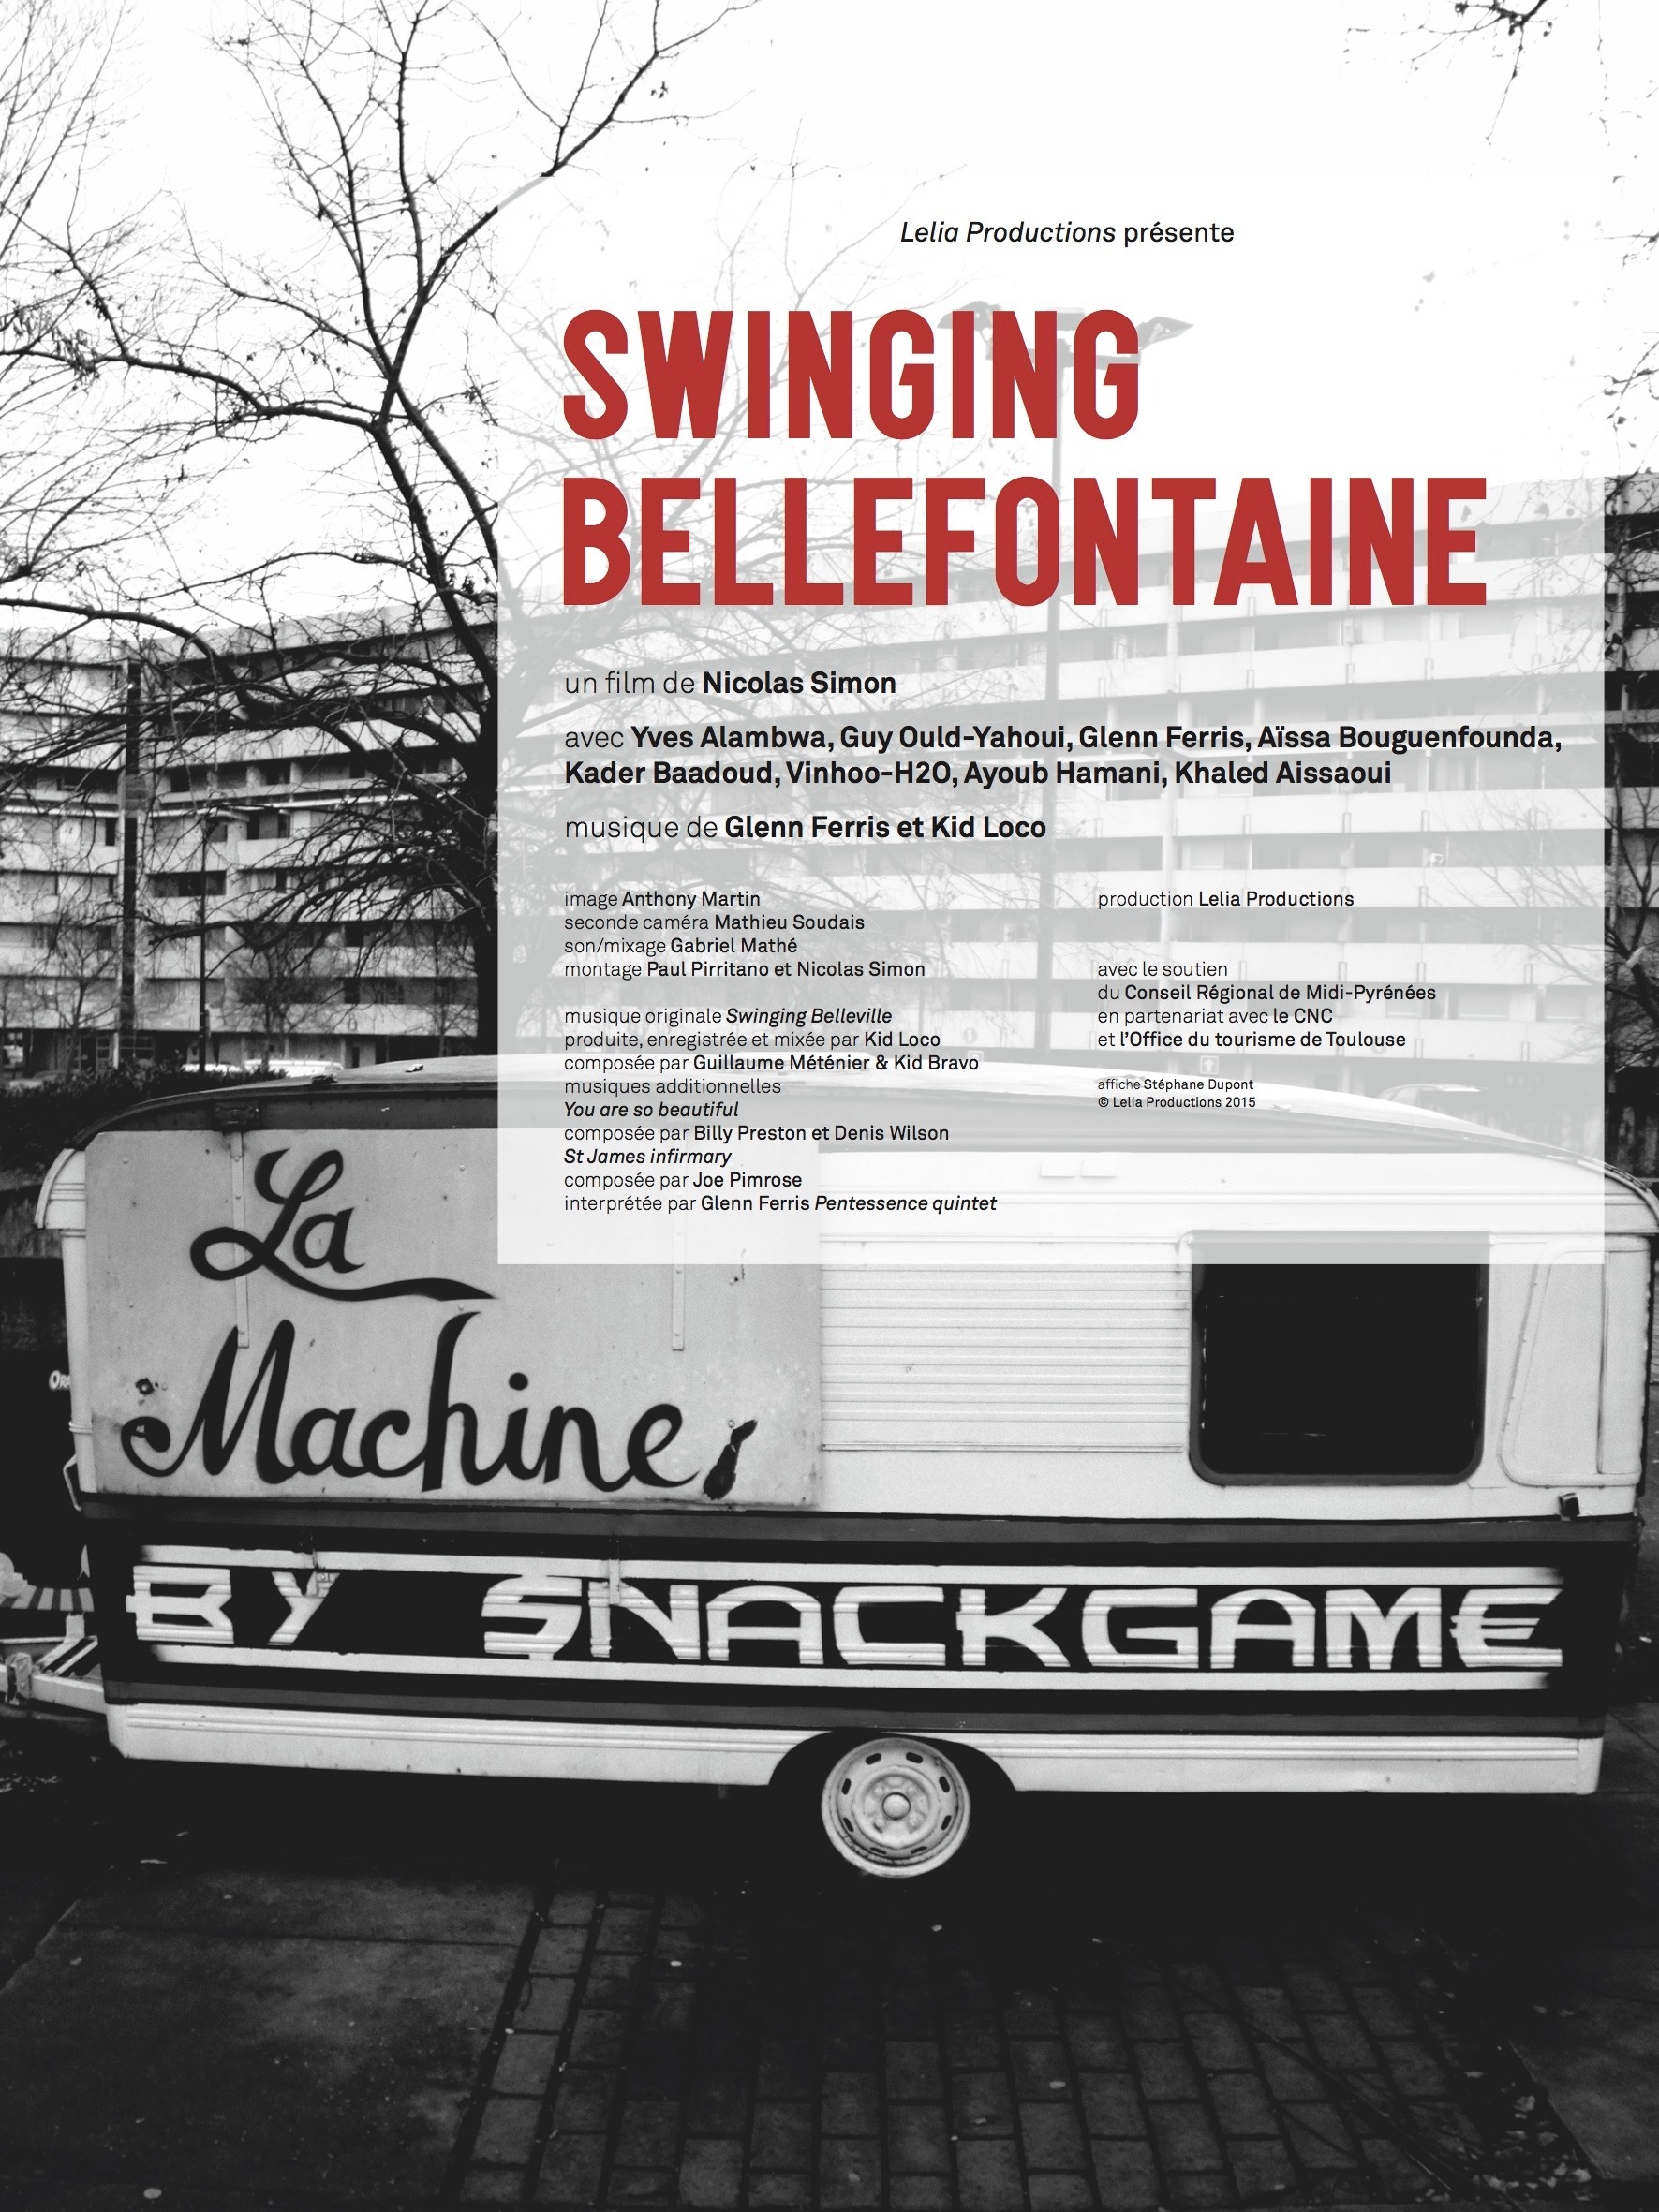 Nicolas Simon – Swinging Bellefontaine